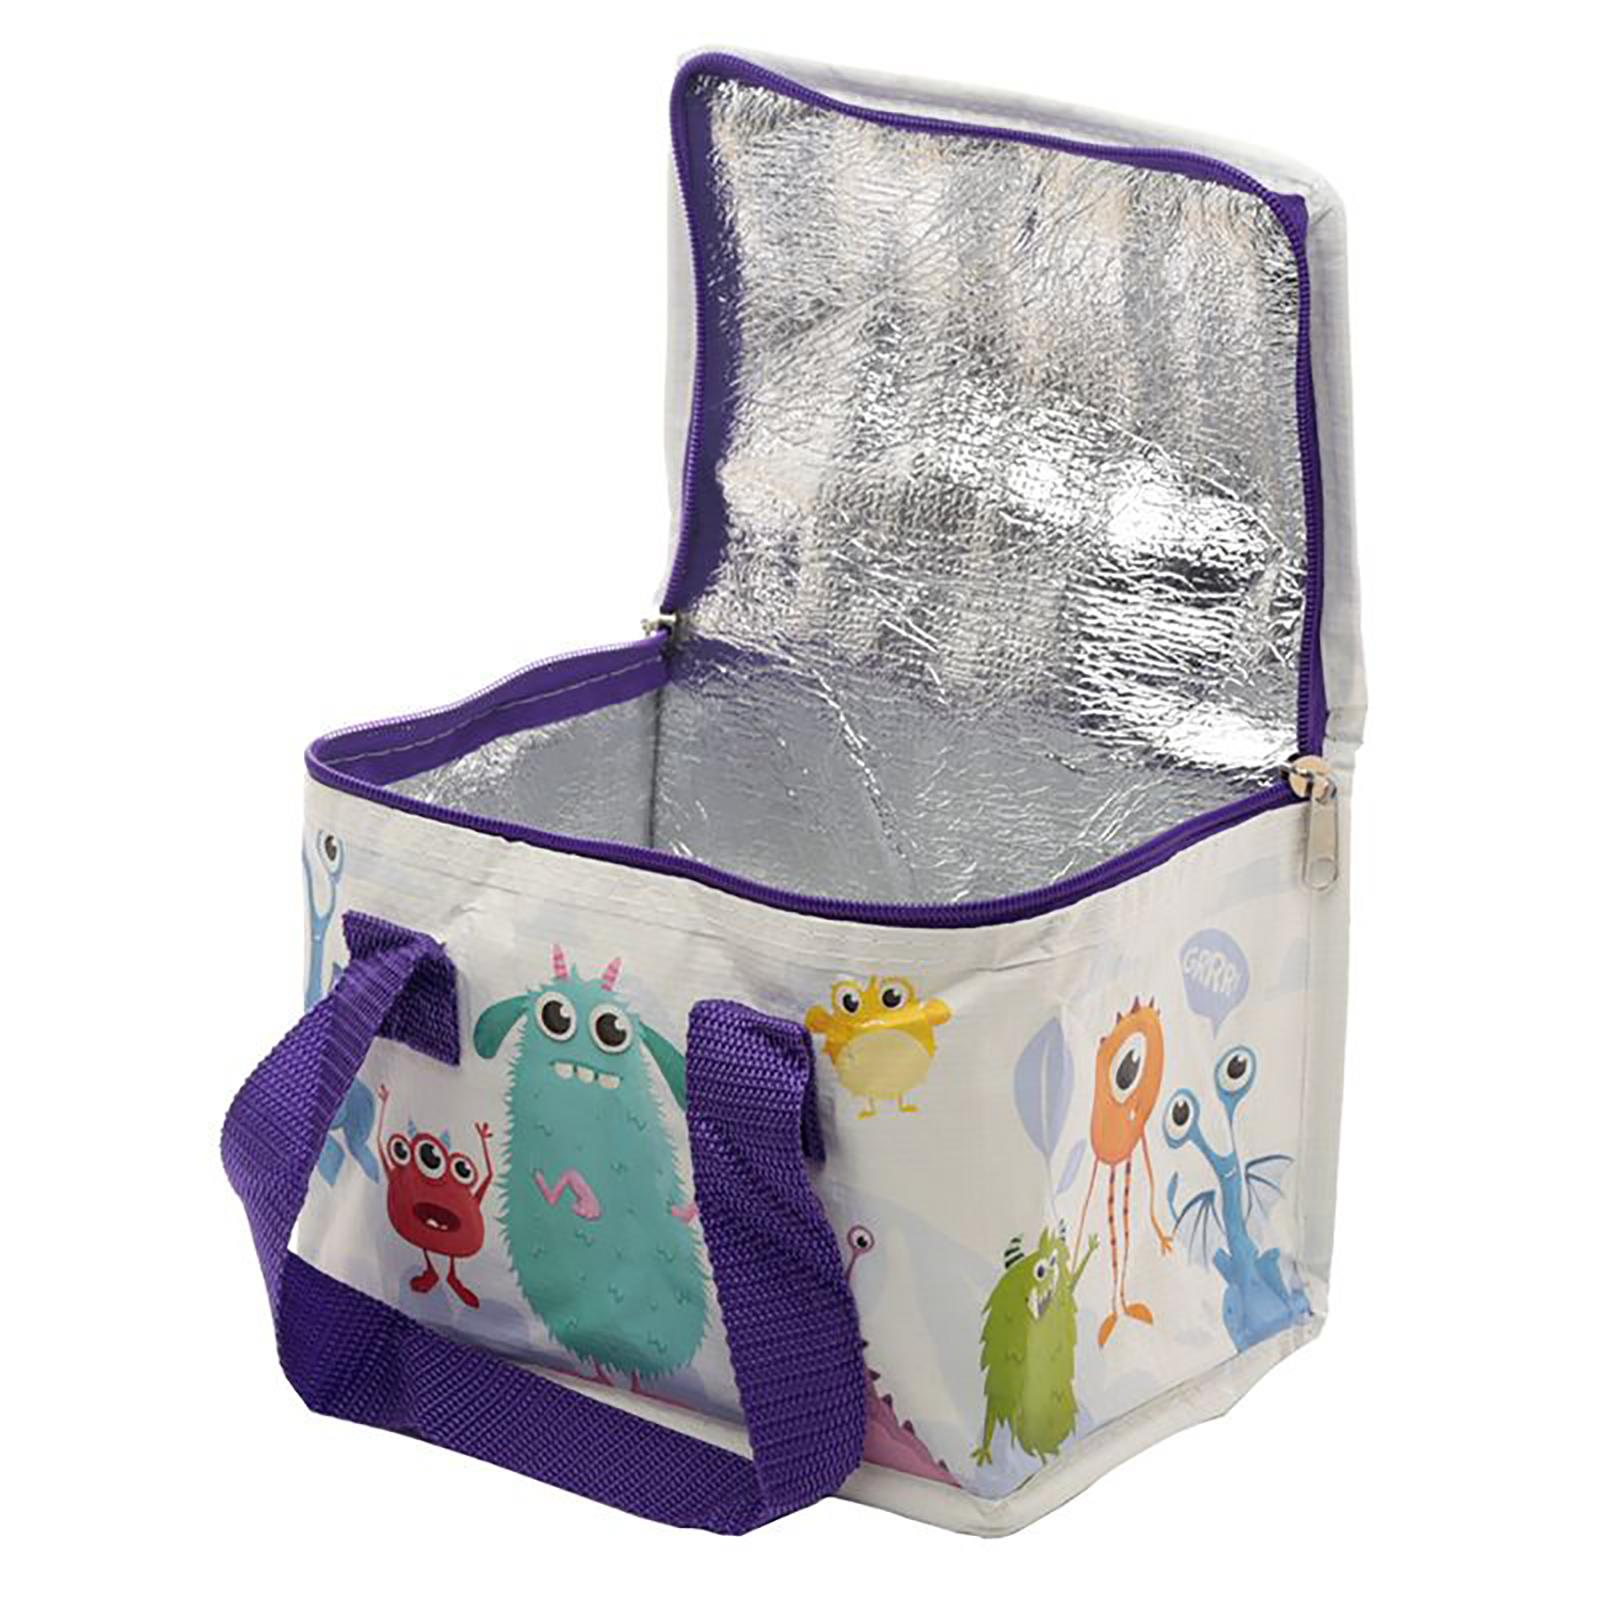 Cool-Bag-School-Picnic-Lunch-Box-Insulated-Small-Thermal-Cooler-Novelty-5-Litre miniatura 84